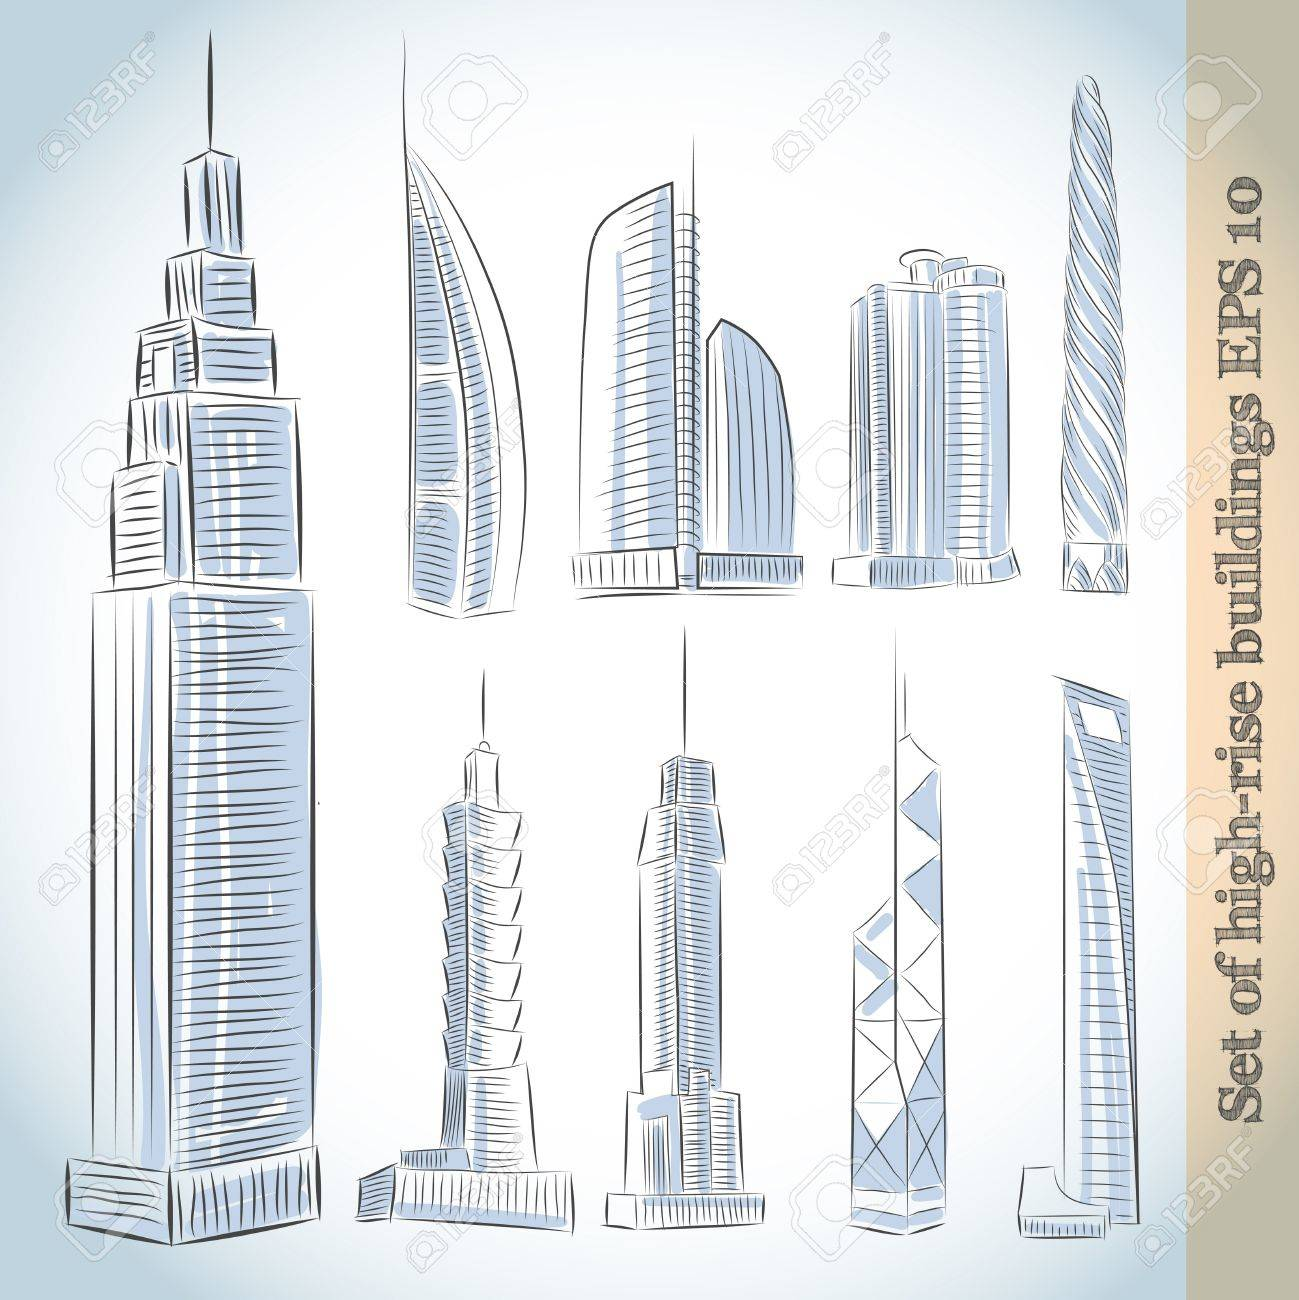 Building Icons Set Of Modern Skyscrapers Isolated Sketch Stock Vector